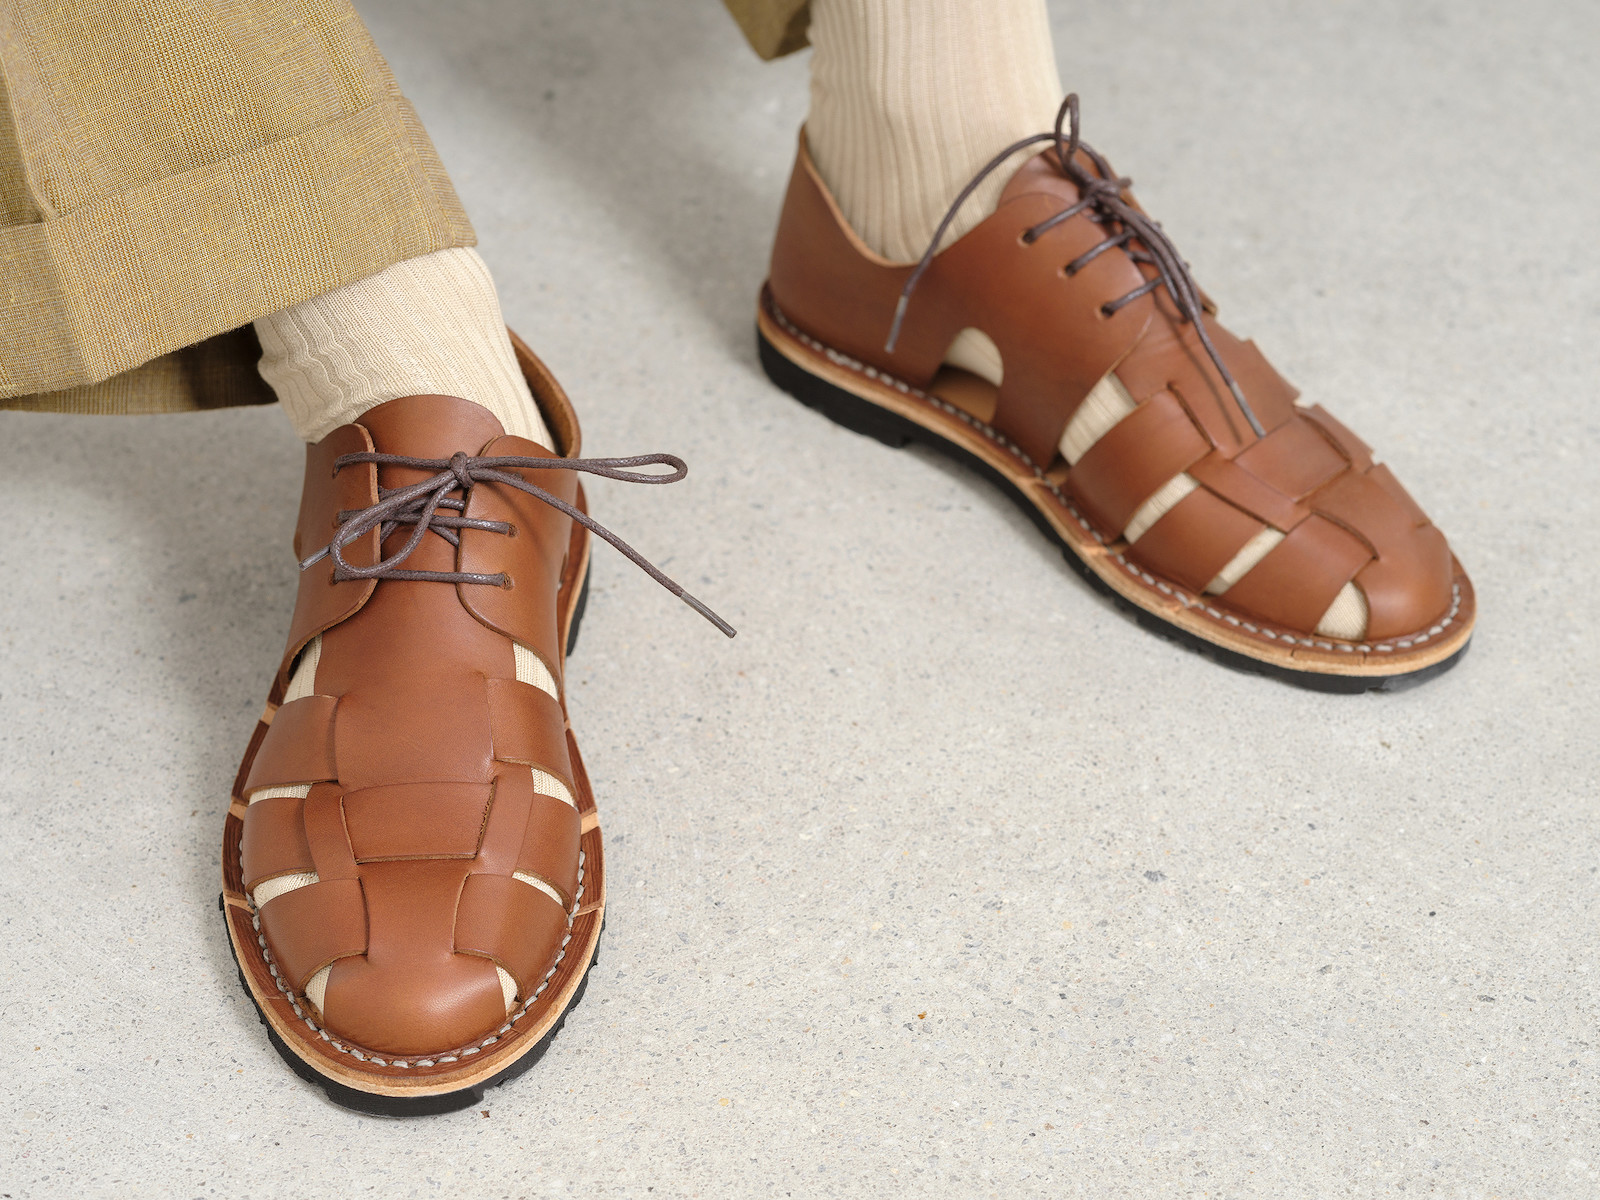 Artisanal shoes Image